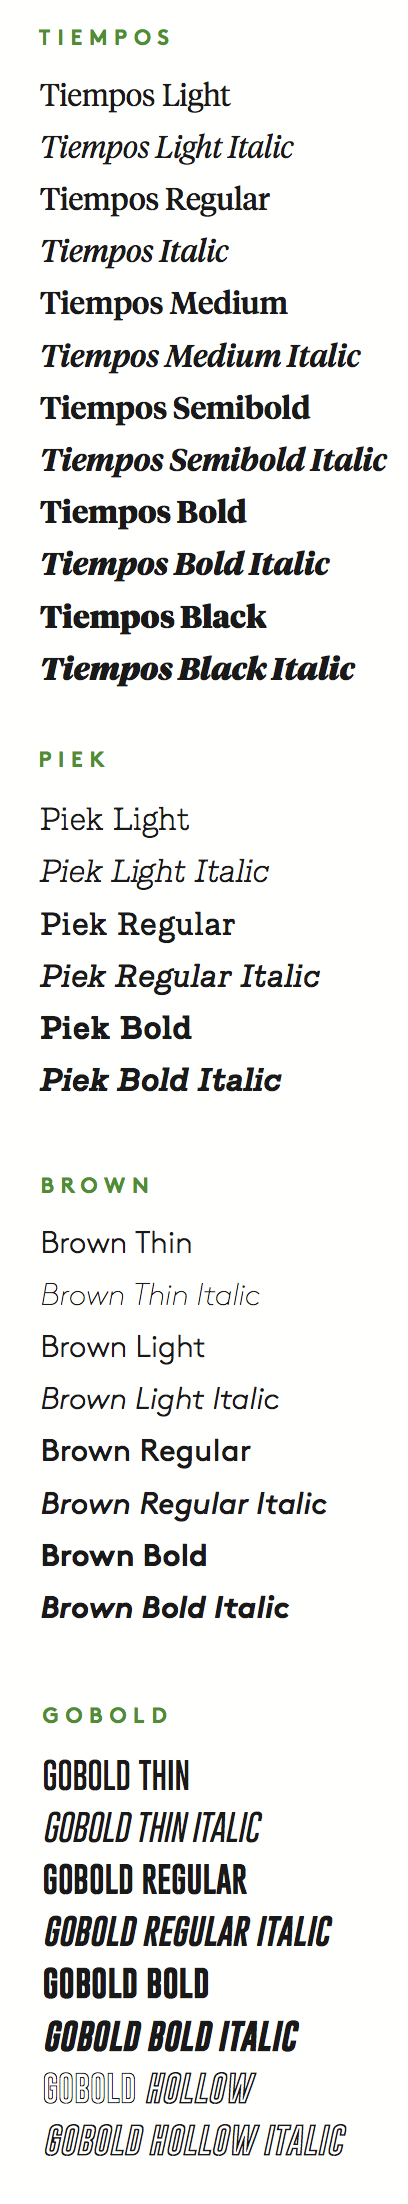 Type Usage | University of Vermont Creative Style Guide | The